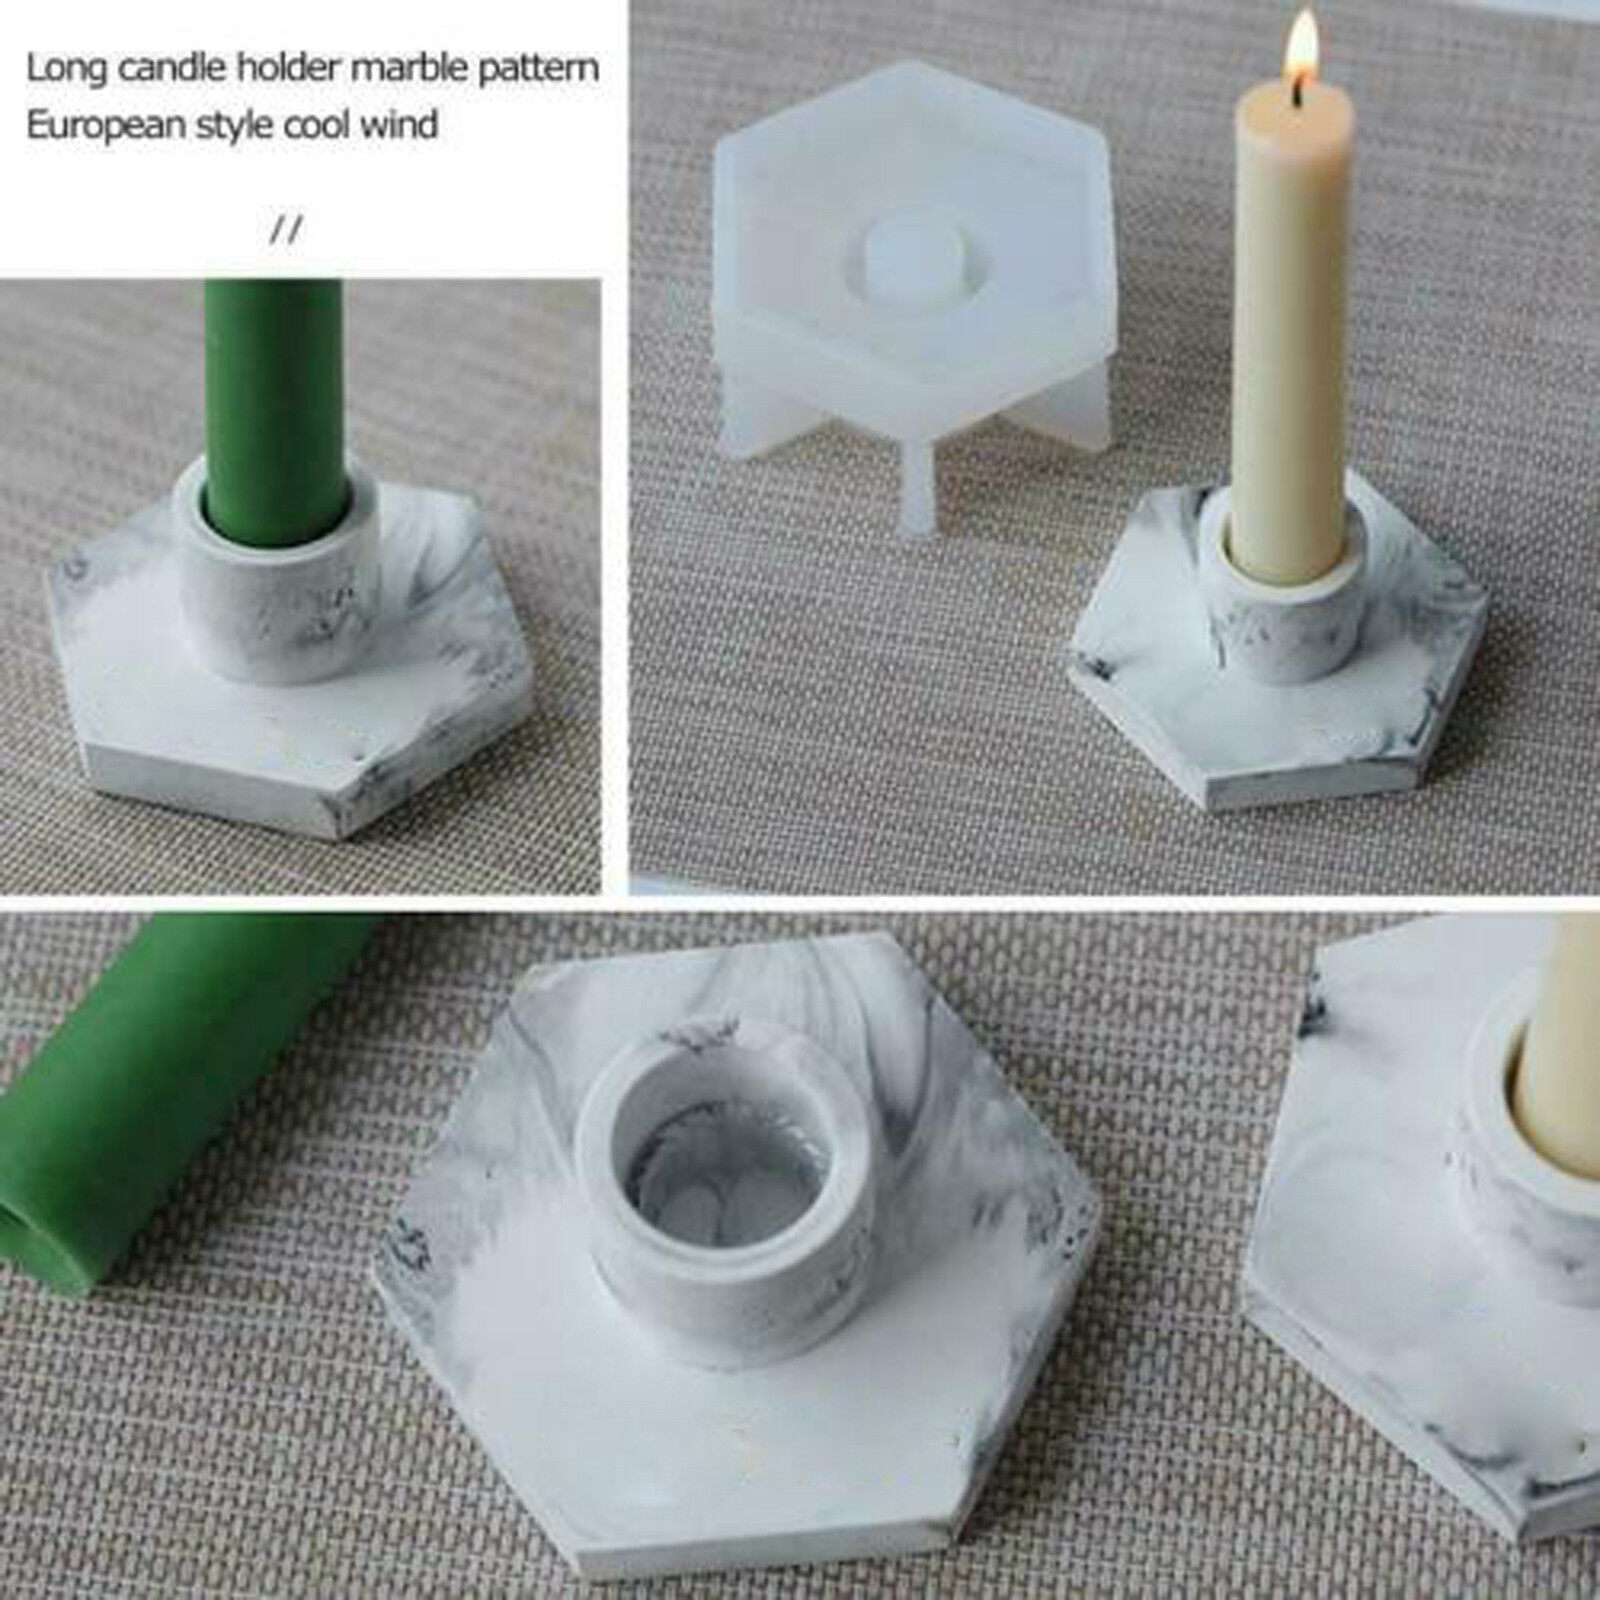 Silicone Candle Holder Mold Resin Making Epoxy Mould Tool Casting Craft W F8r7 Lazada Singapore